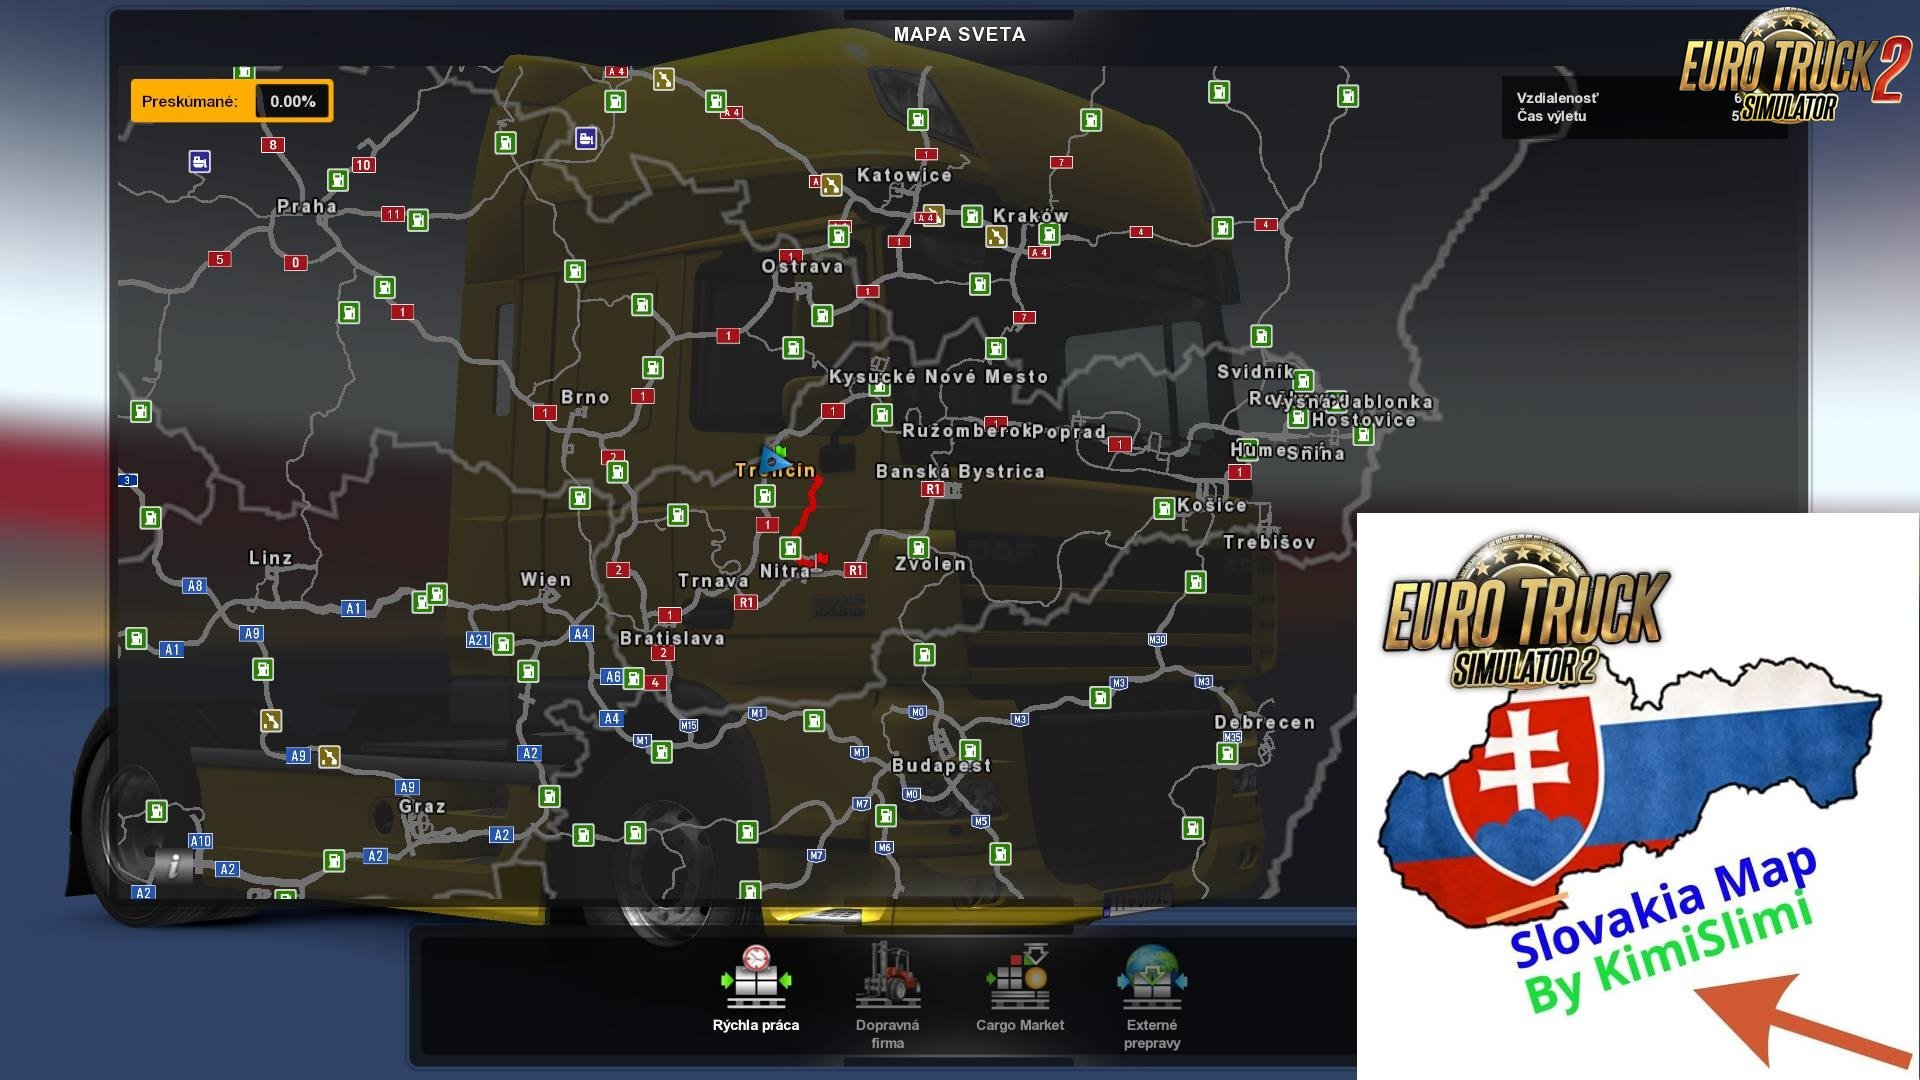 New Slovakia Map V8 0 By Kimislimi 1 32 X Ets2 Mods Euro Truck